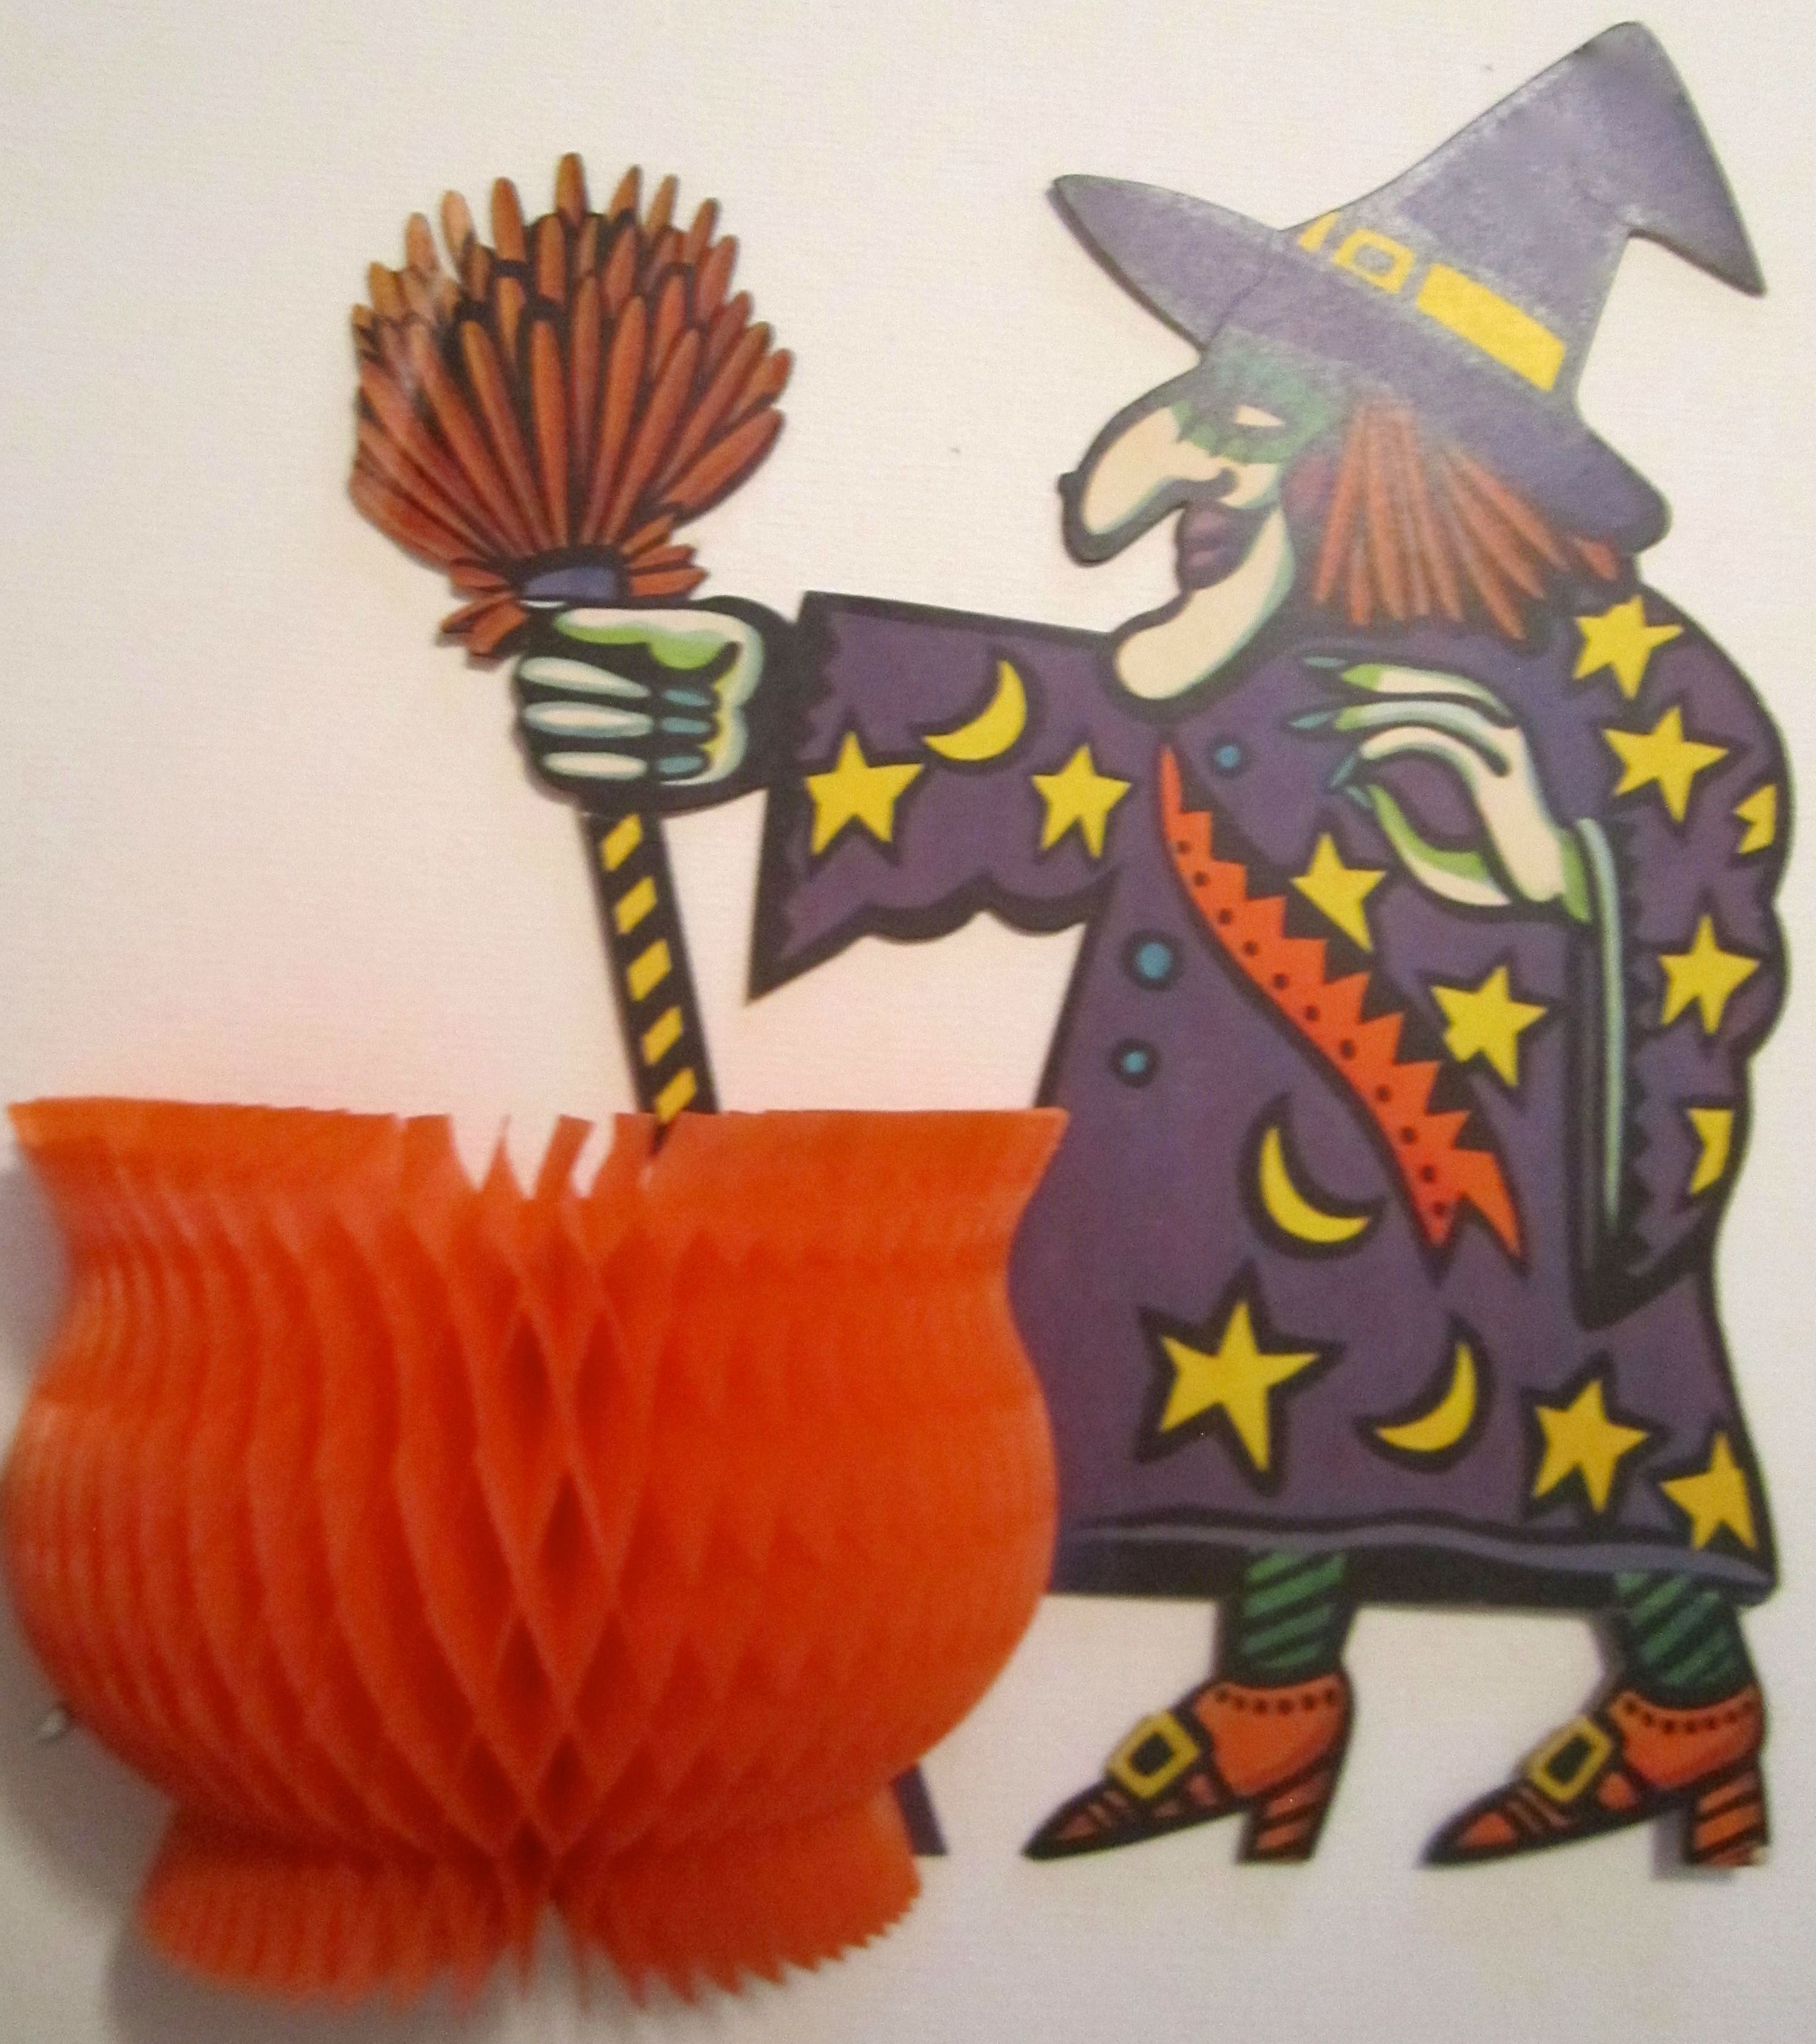 I think she is a vintage Dennison Witch and honeycomb cauldron from the early 1970's